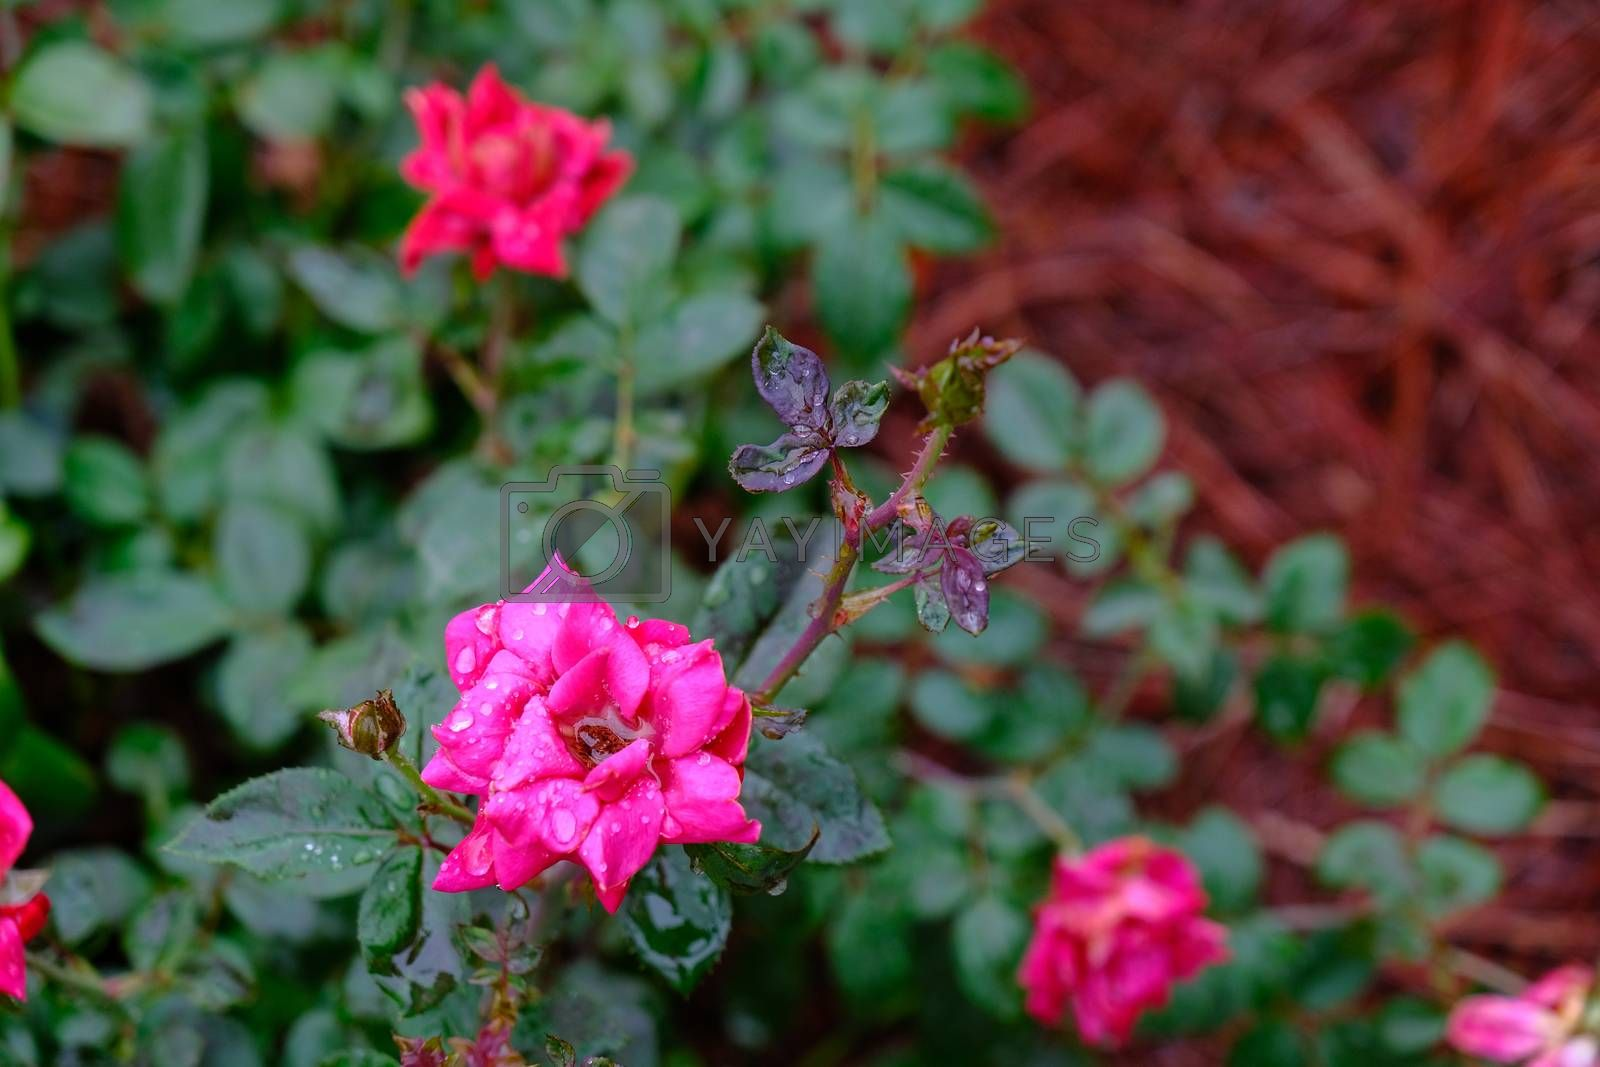 Red and Pink Roses in Rain in a Landscaped Garden